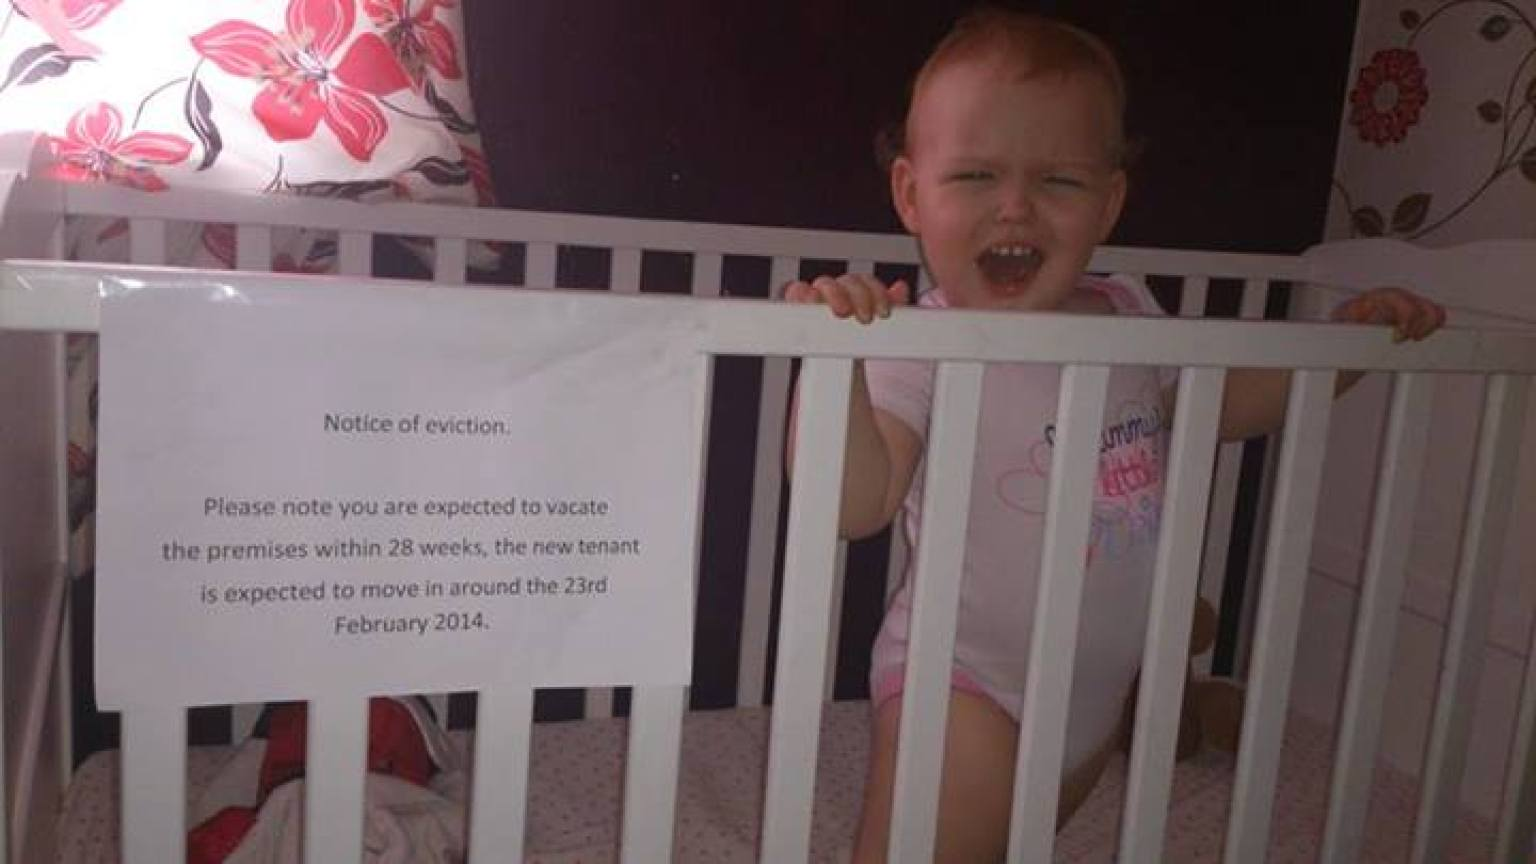 the world 39 s cutest eviction notice photo huffpost. Black Bedroom Furniture Sets. Home Design Ideas